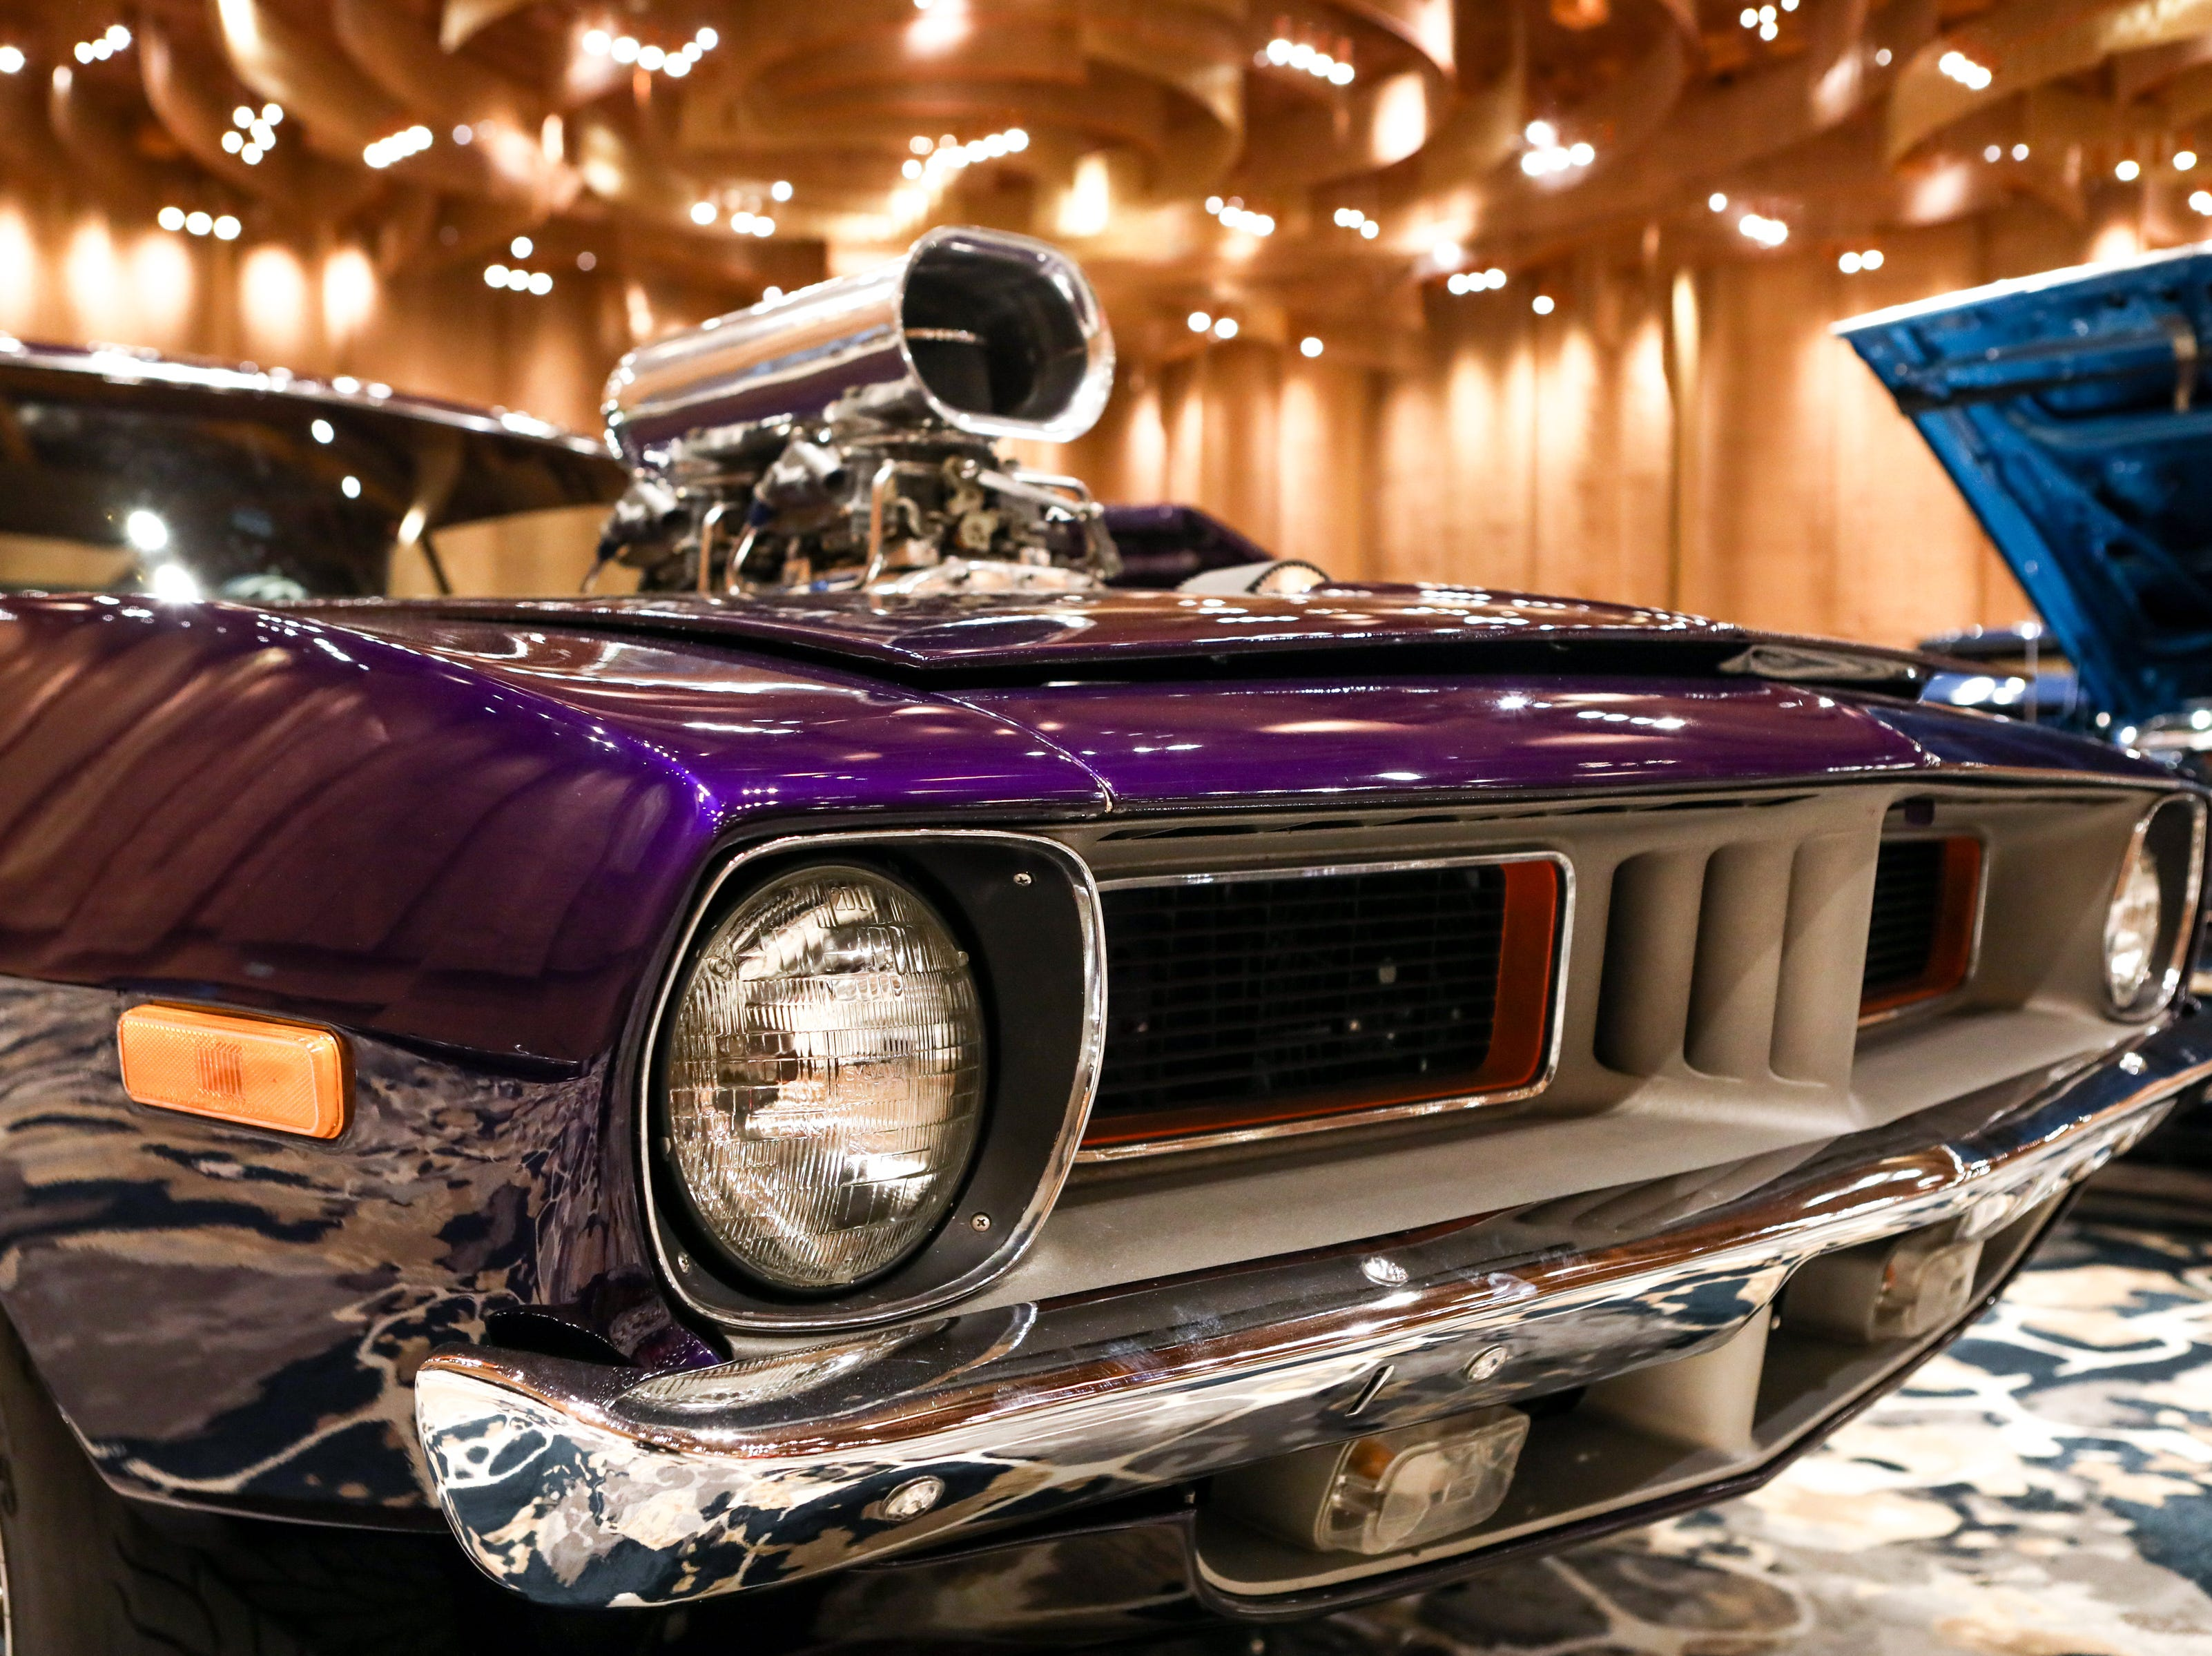 A 1972 Plymouth Baracuda. The 2019 annual KOI Cavalcade of Customs Car Show will feature hundreds of cars, trucks, motorcycles and other vehicles to view at the Duke Energy Convention Center.